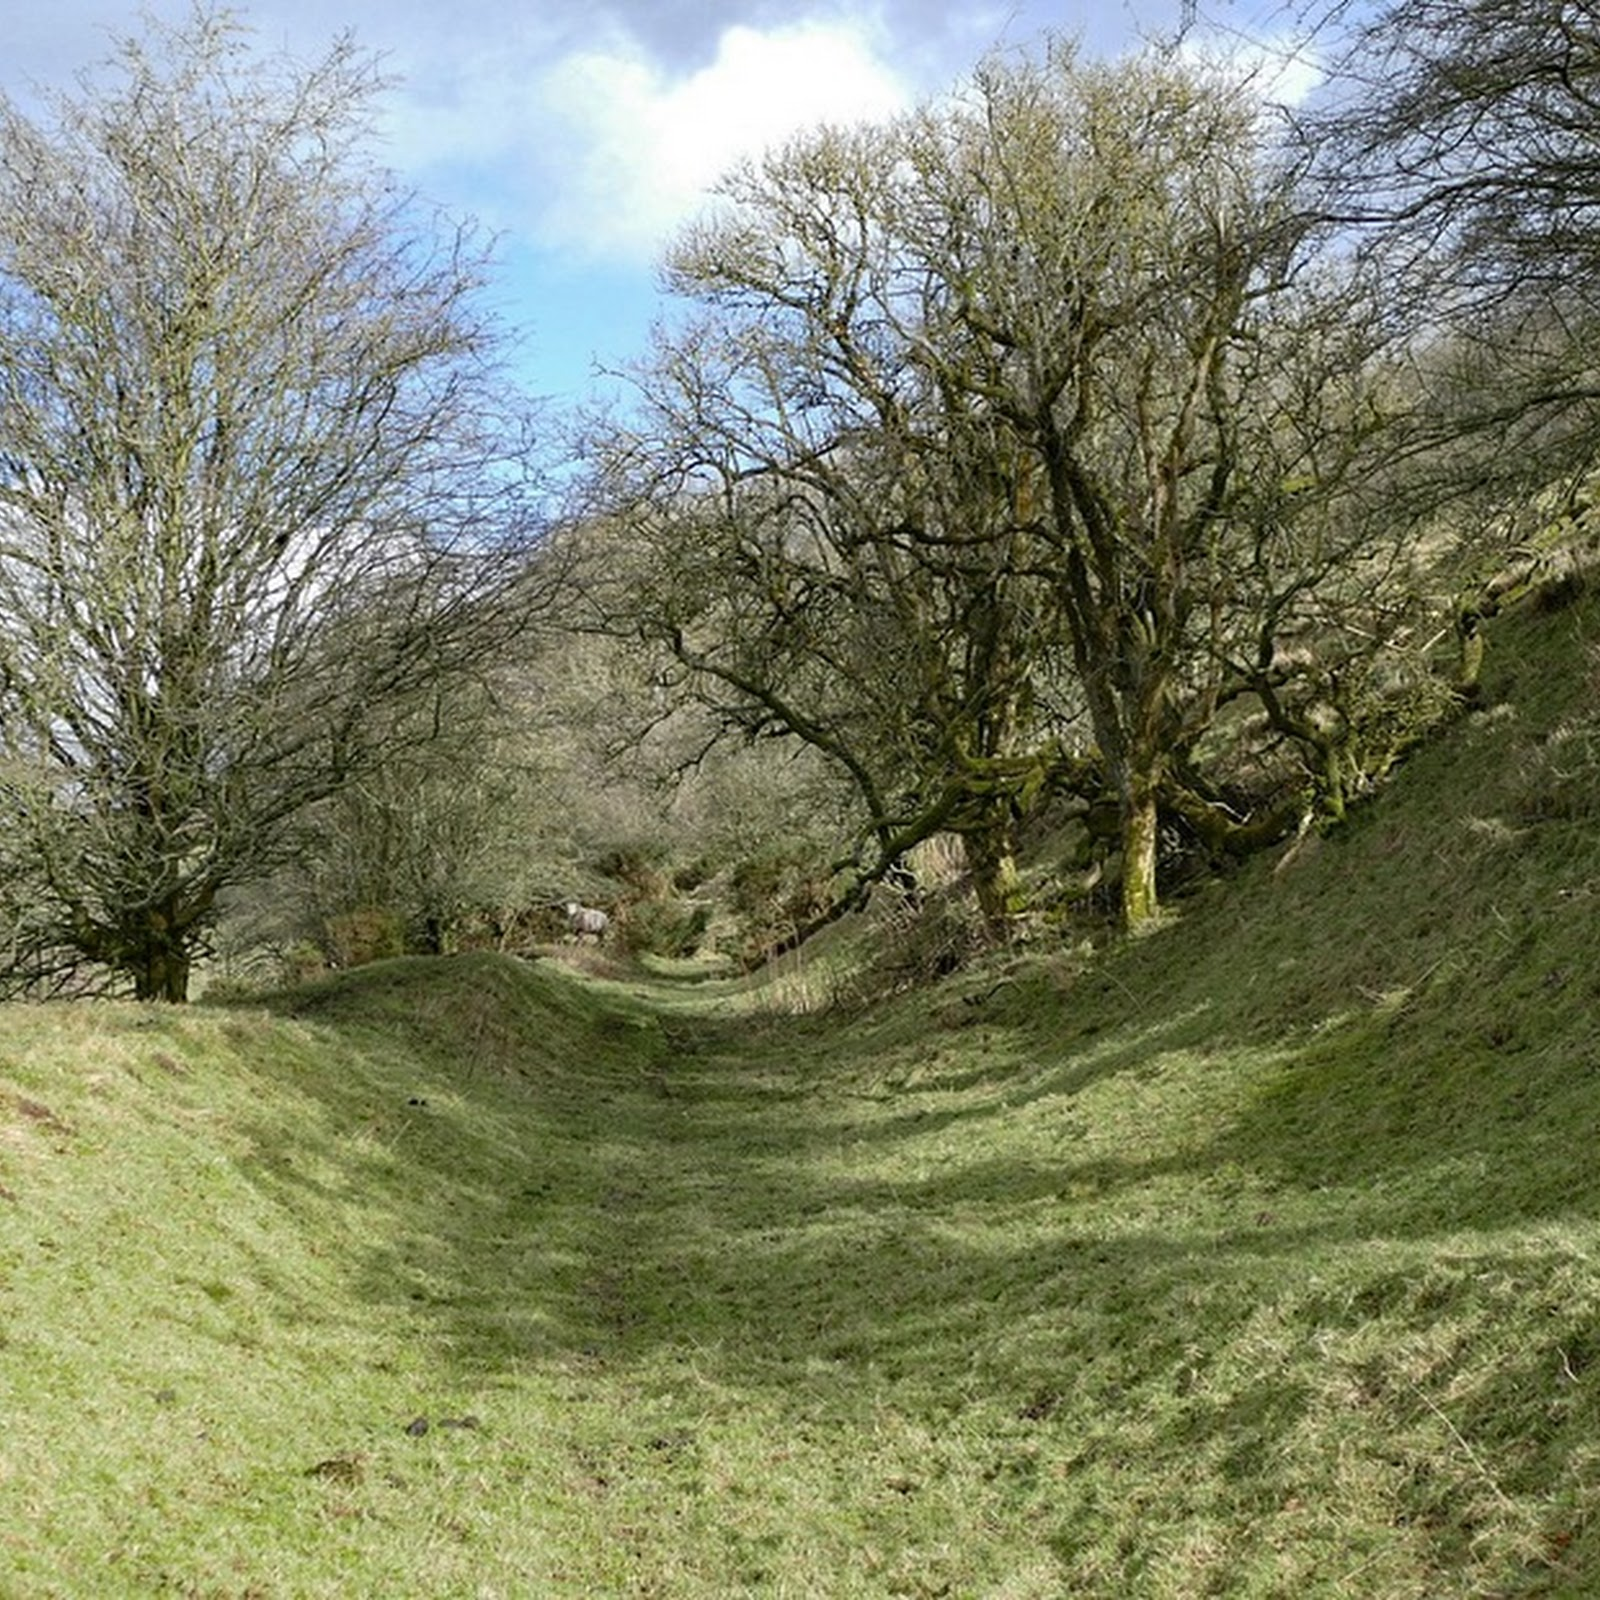 Offa's Dyke: The 1,200-Years-Old Dyke Separating Wales From England